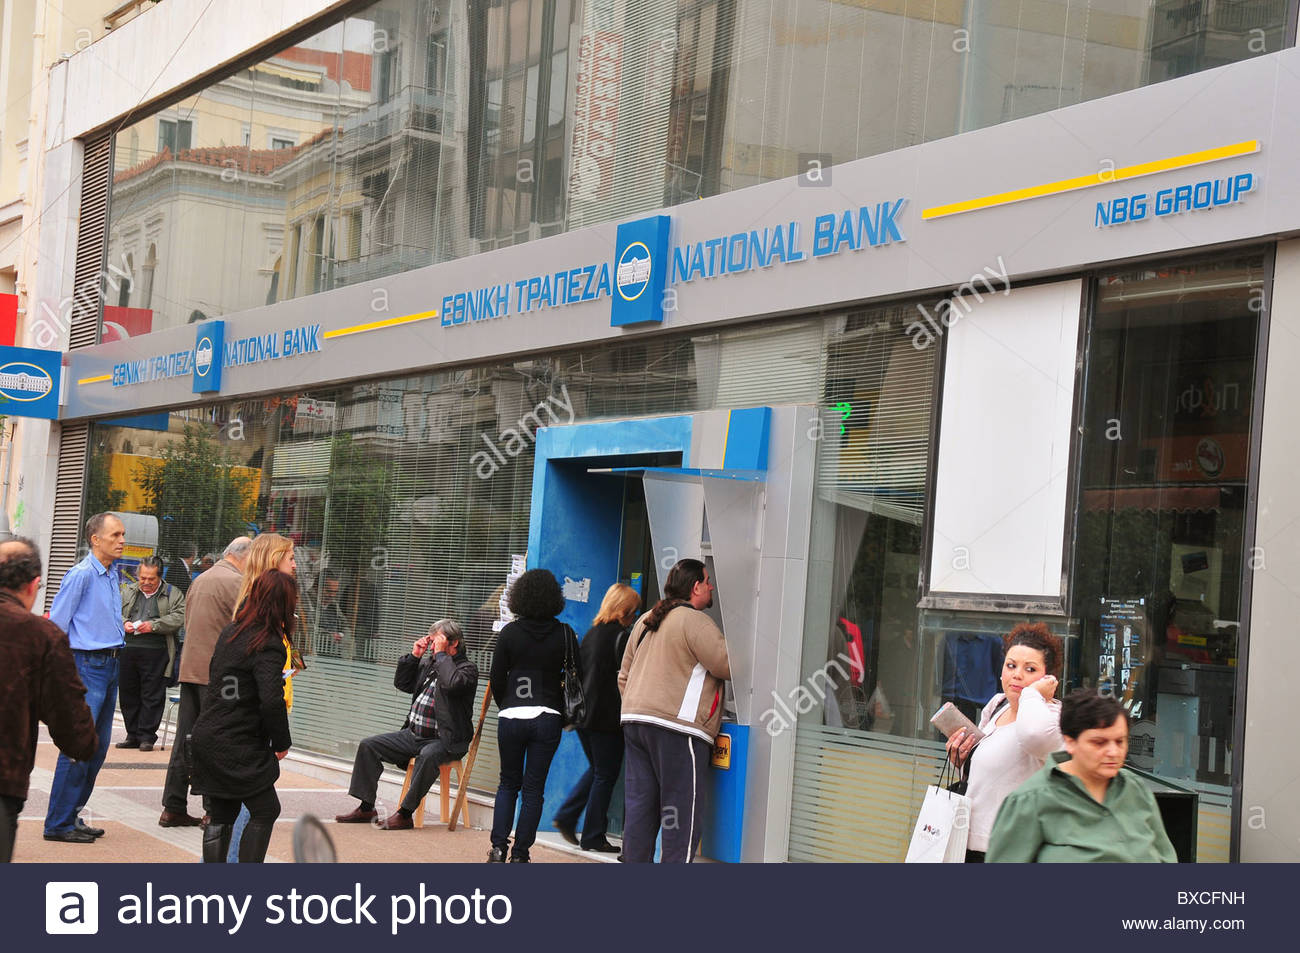 A branch of Greek bank National Bank - Stock Image